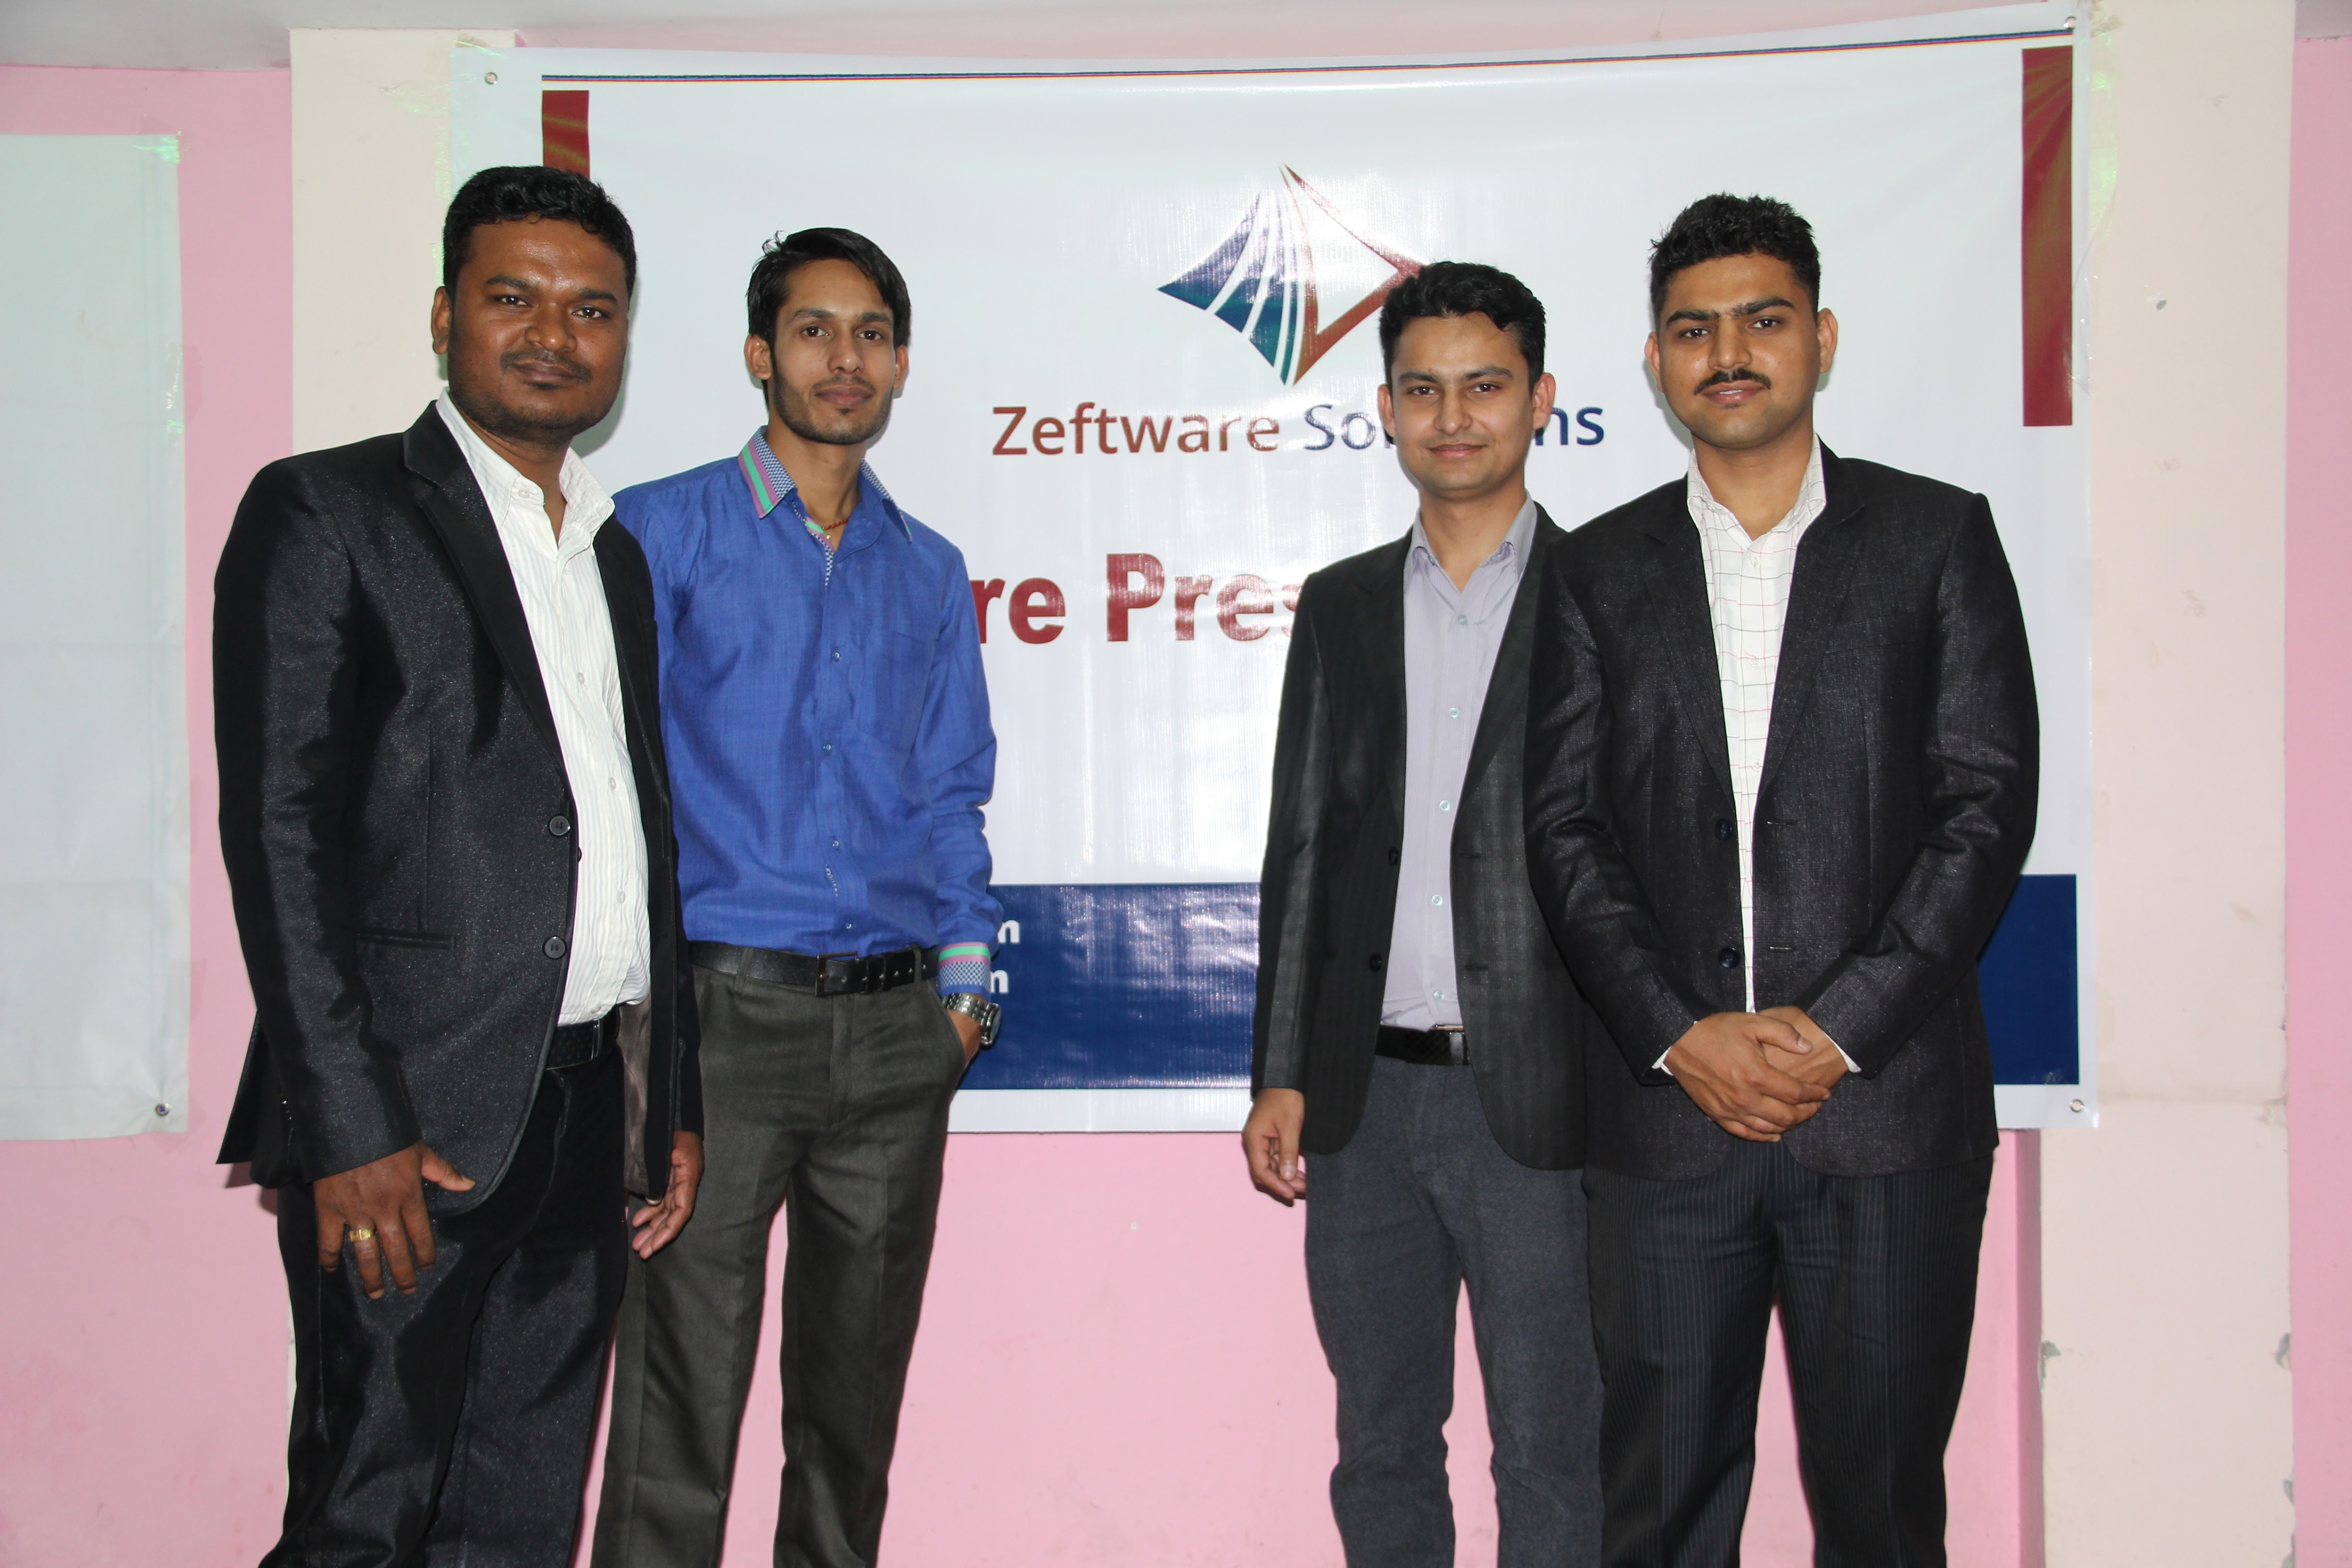 Founders of Zeftware Solutions